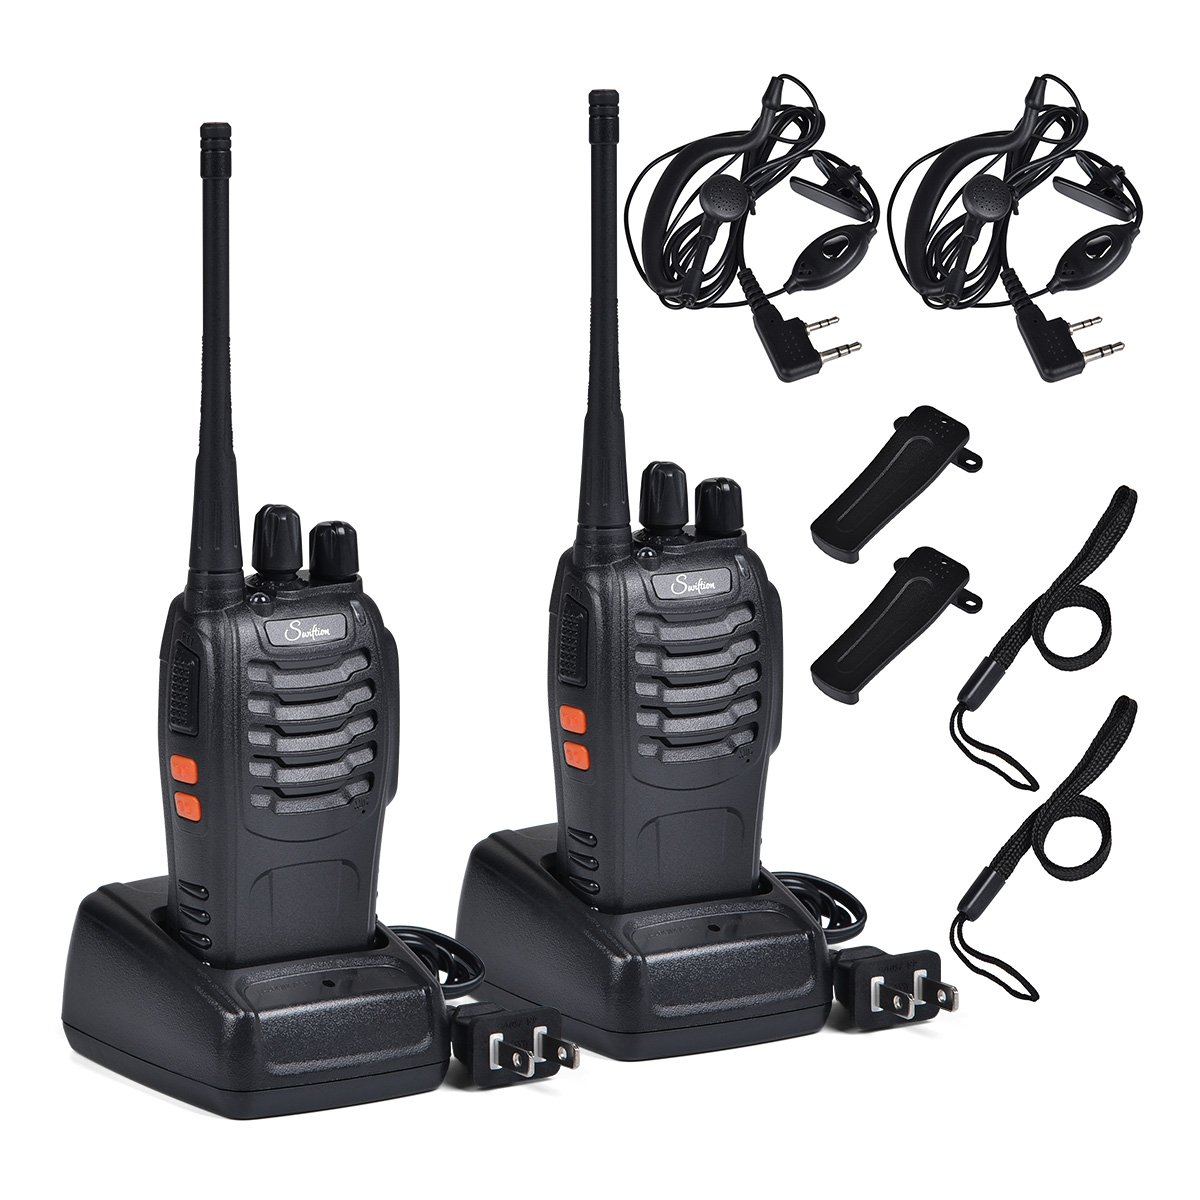 Rechargeable Kids Walkie Talkies Professional Interphone for Hunting for Police BF-888S two way radios Long range Rechargeable with Charger earphone (with Earpiece)